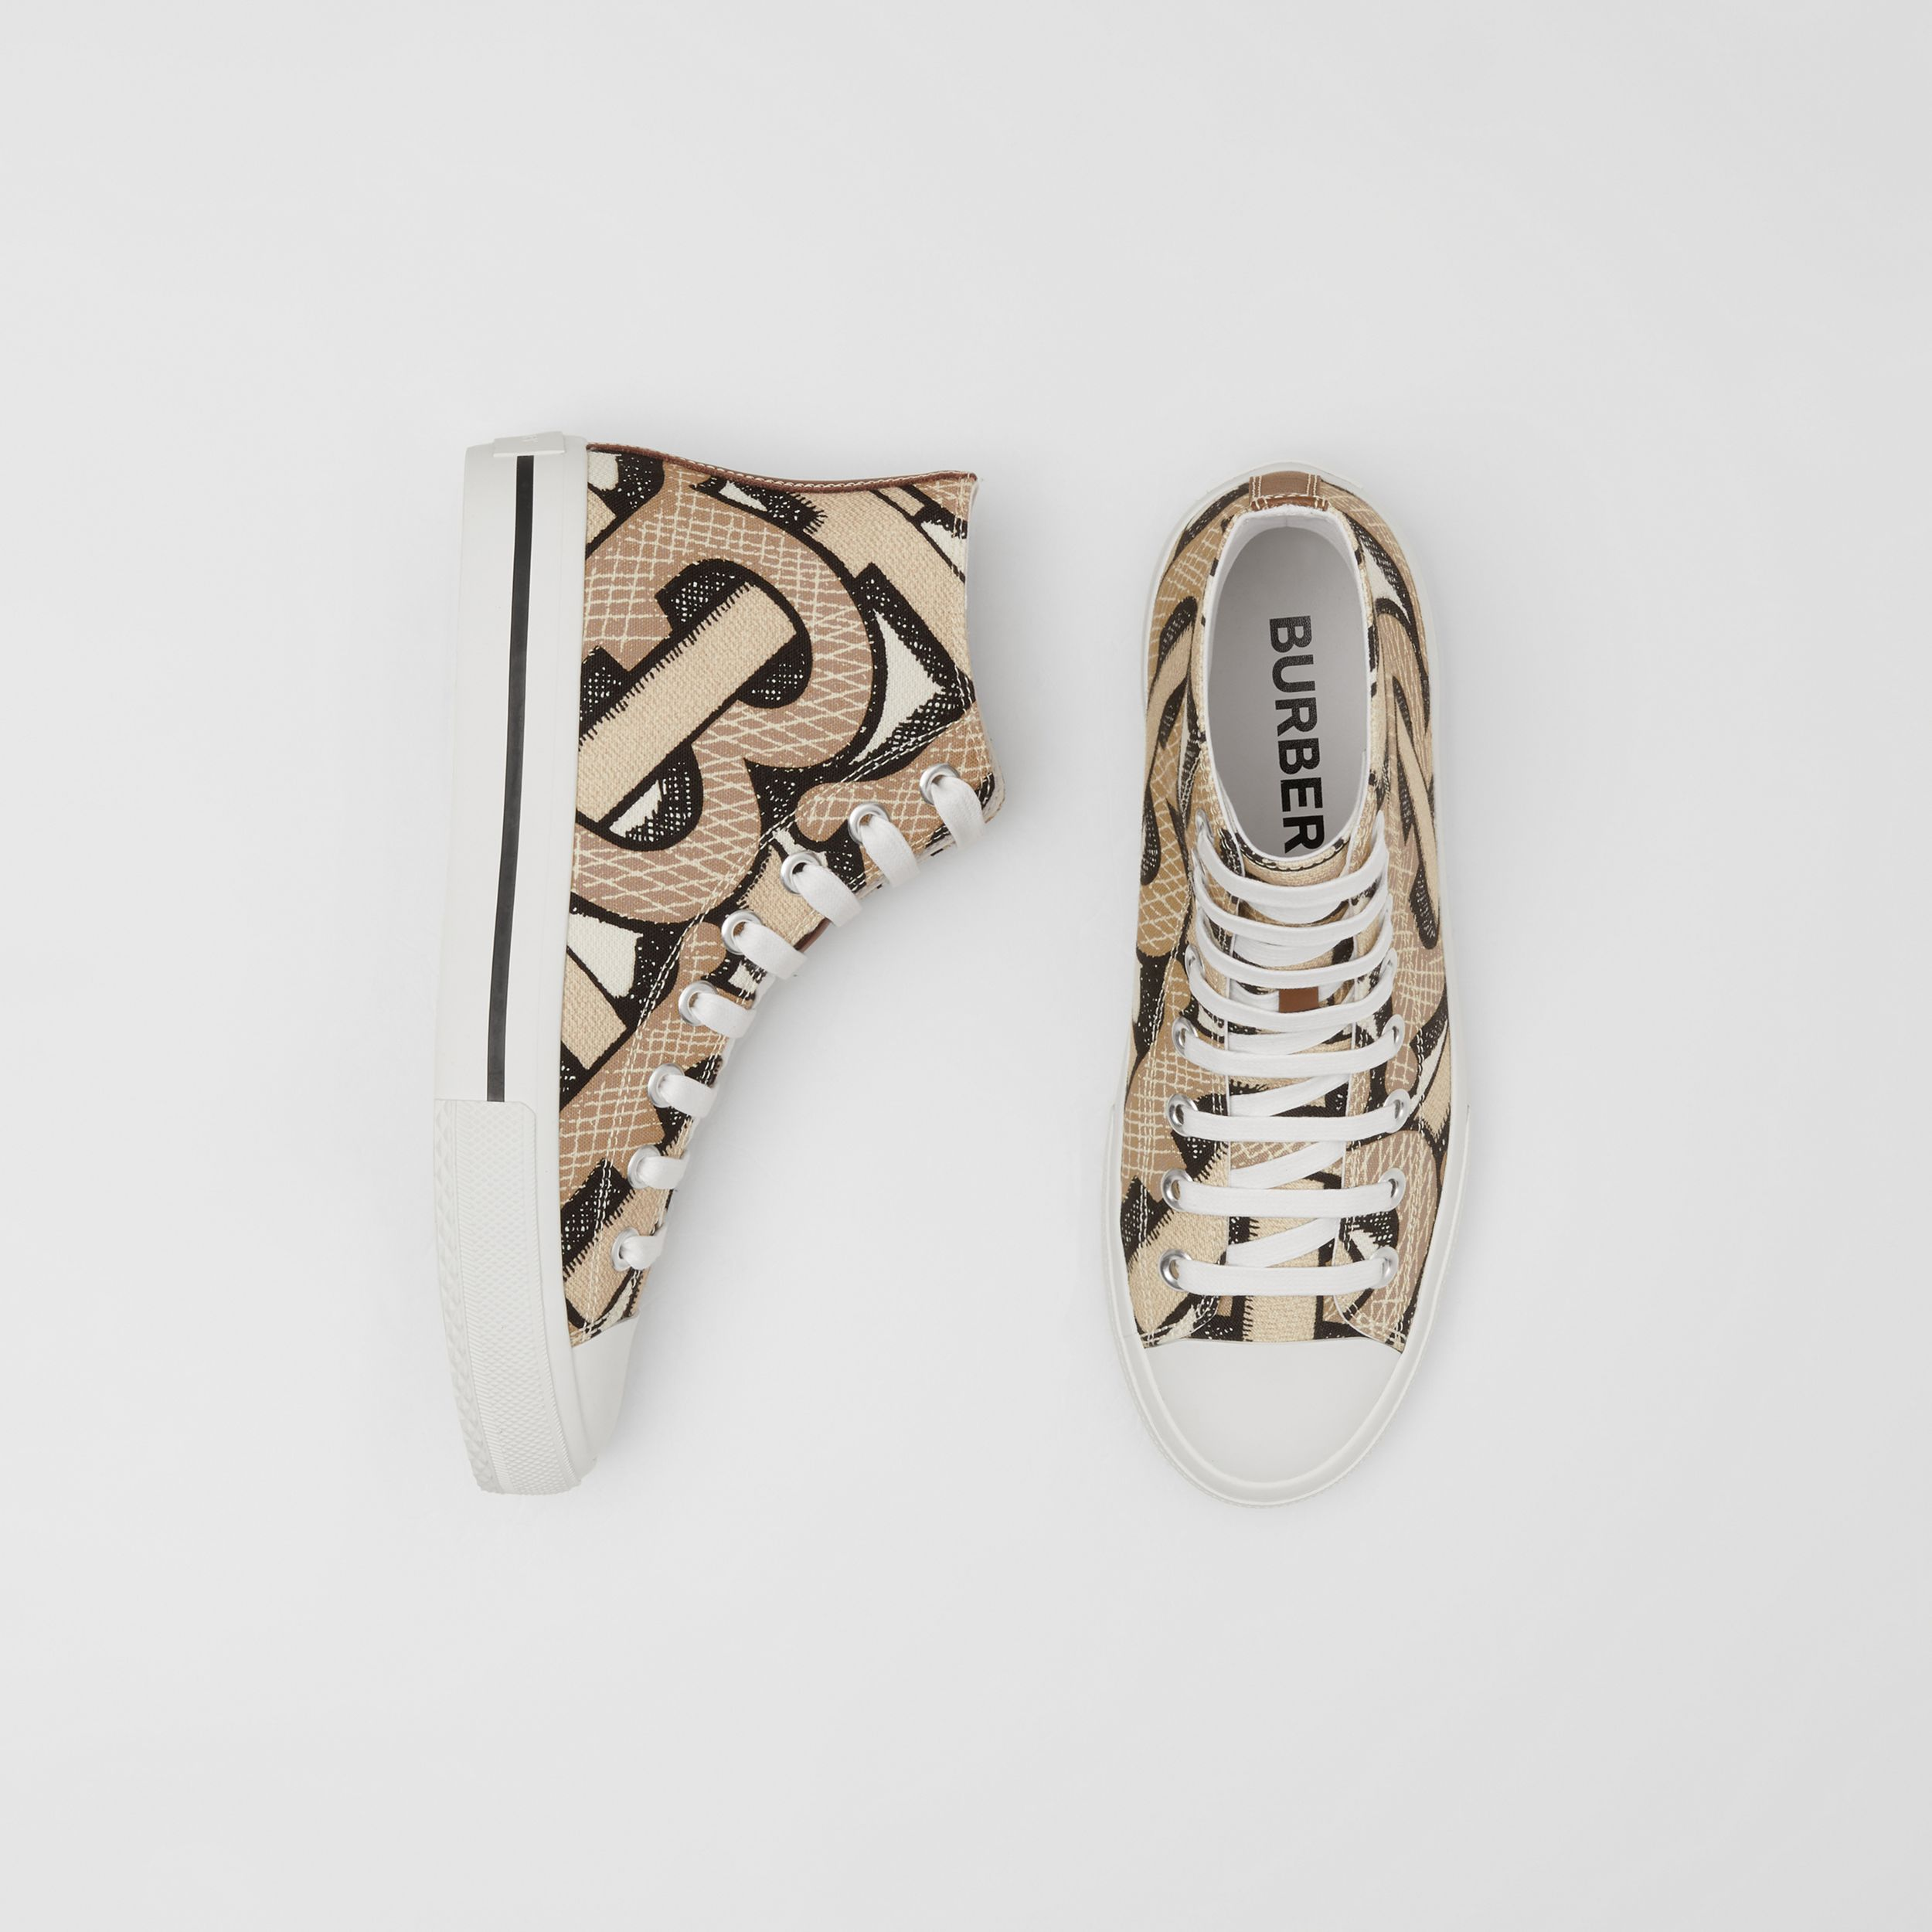 Monogram Print Cotton Canvas High-top Sneakers in Dark Beige - Women | Burberry - 1